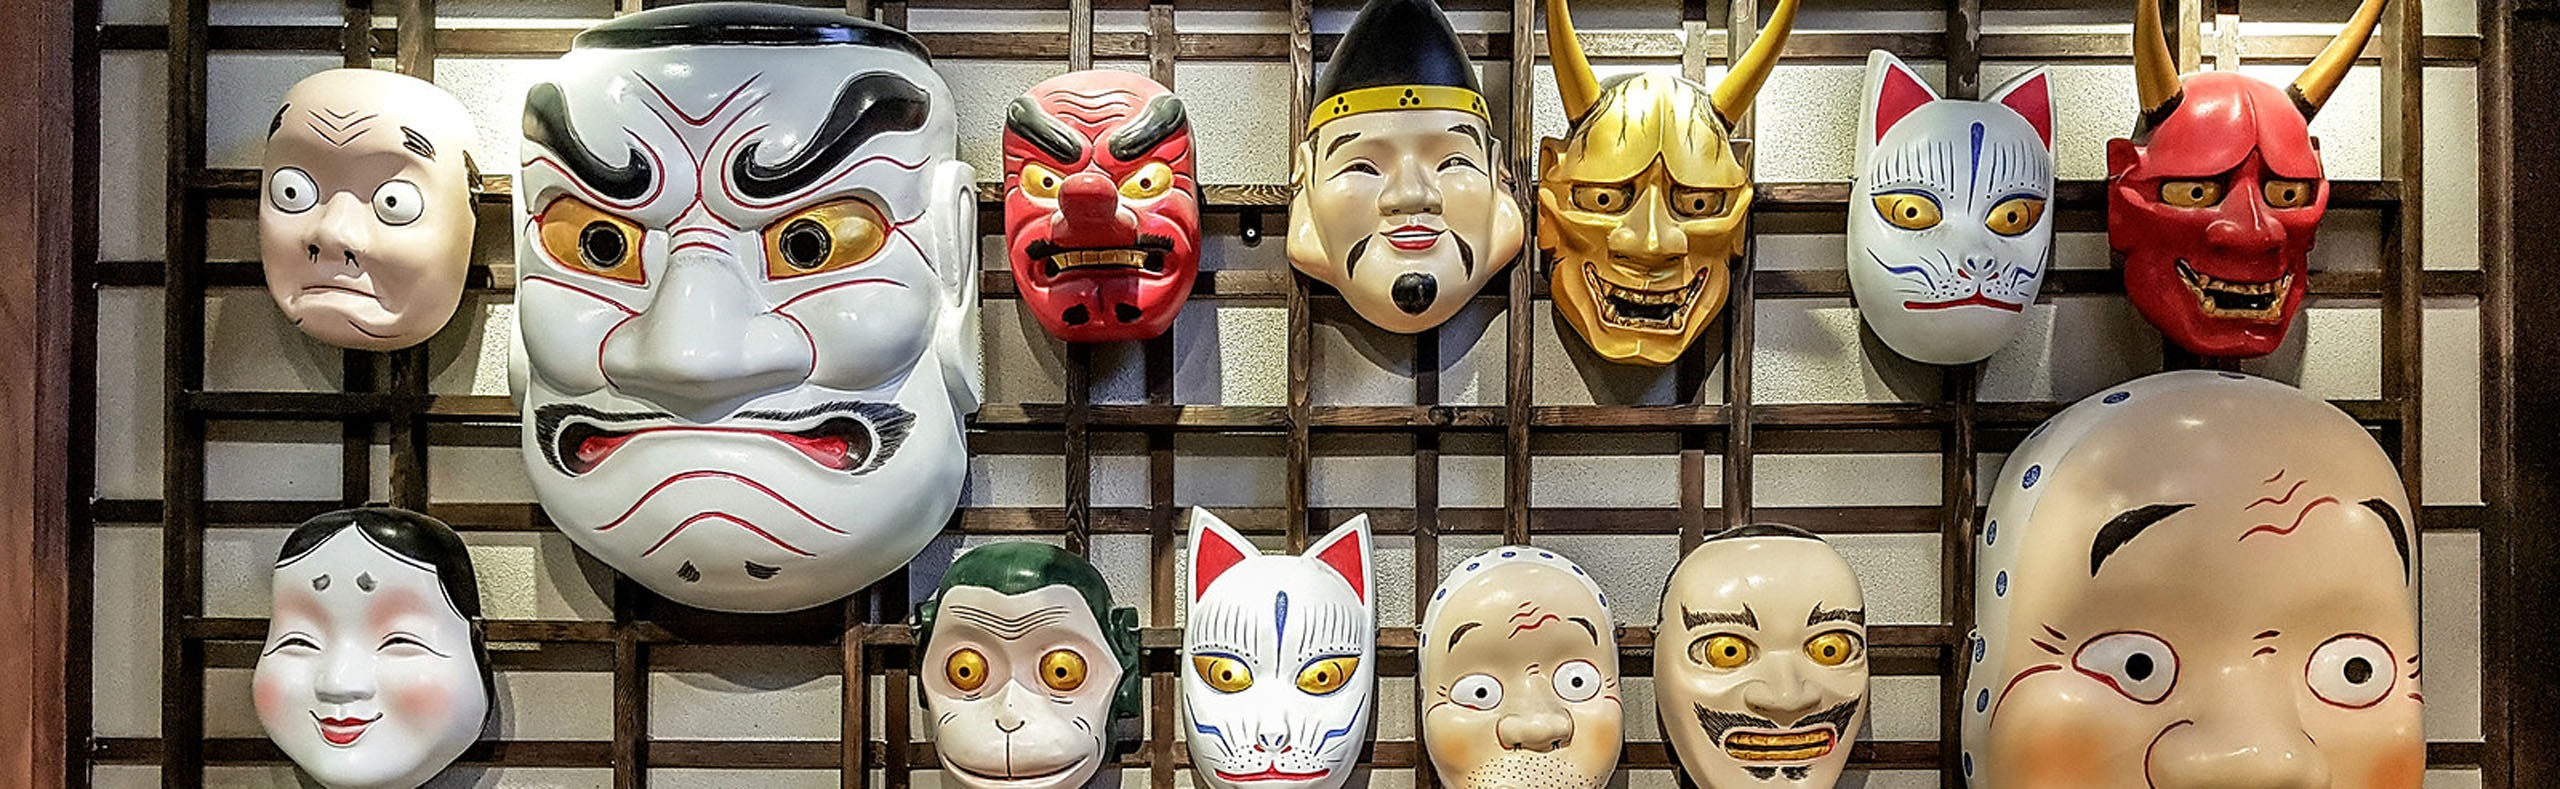 Top 9 Souvenirs to Buy in Japan